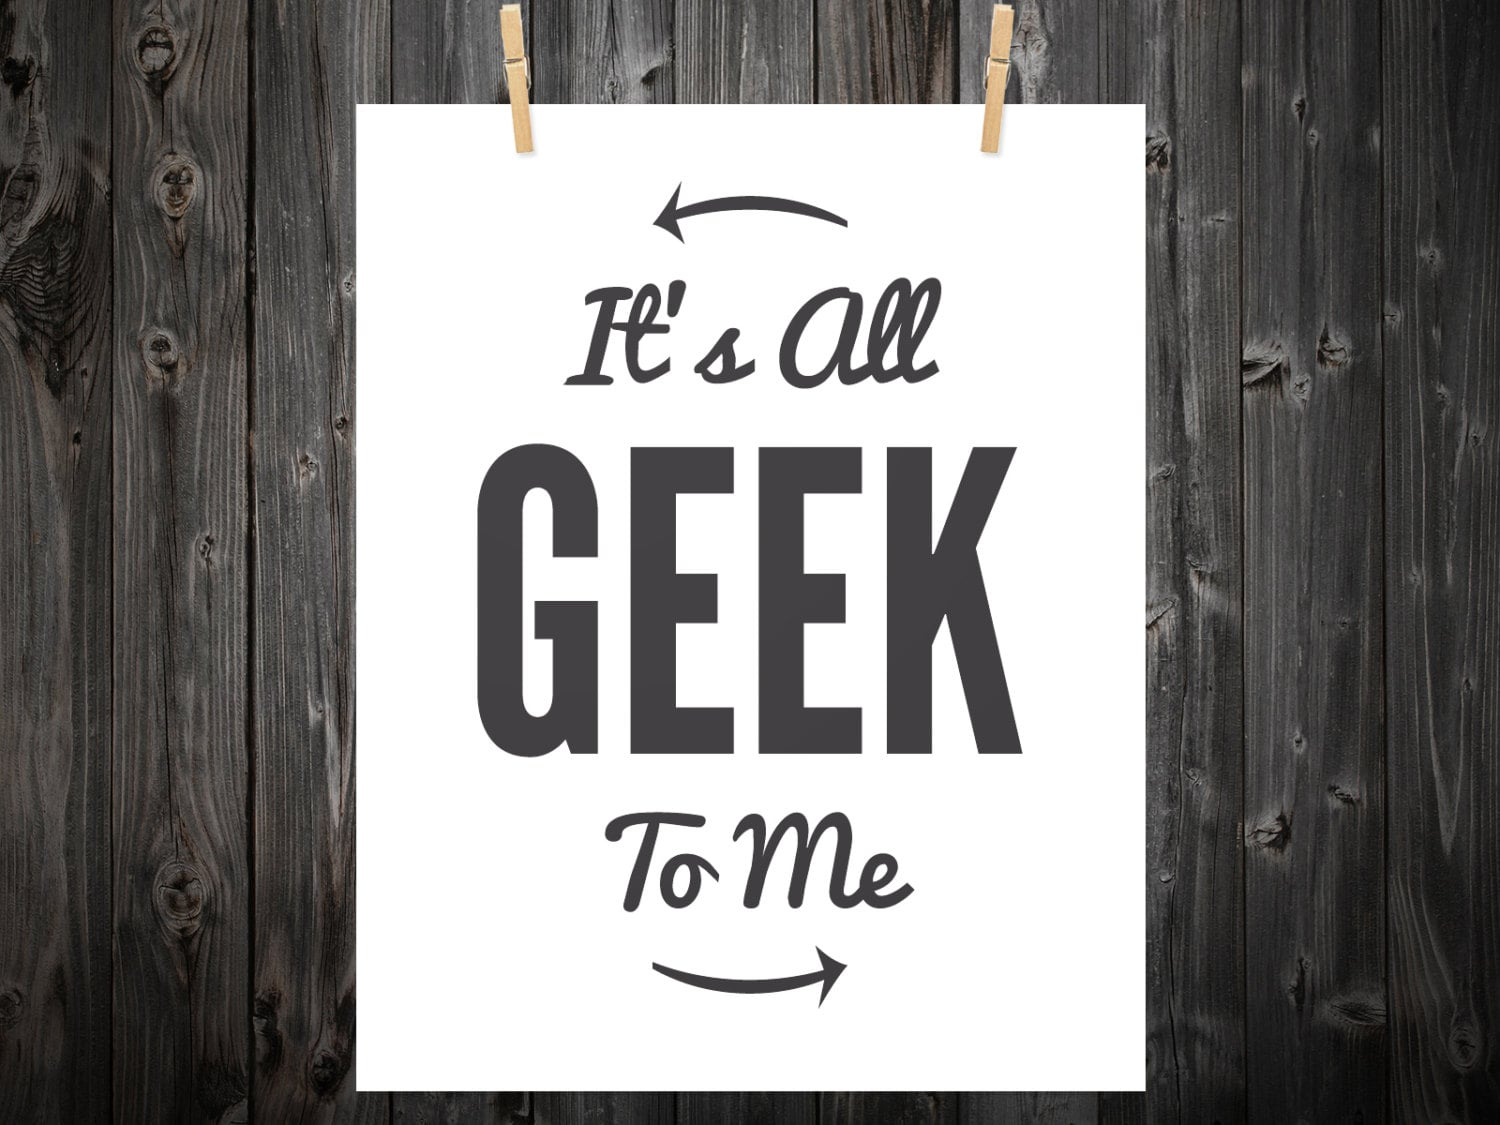 It's all geek to me ($12)